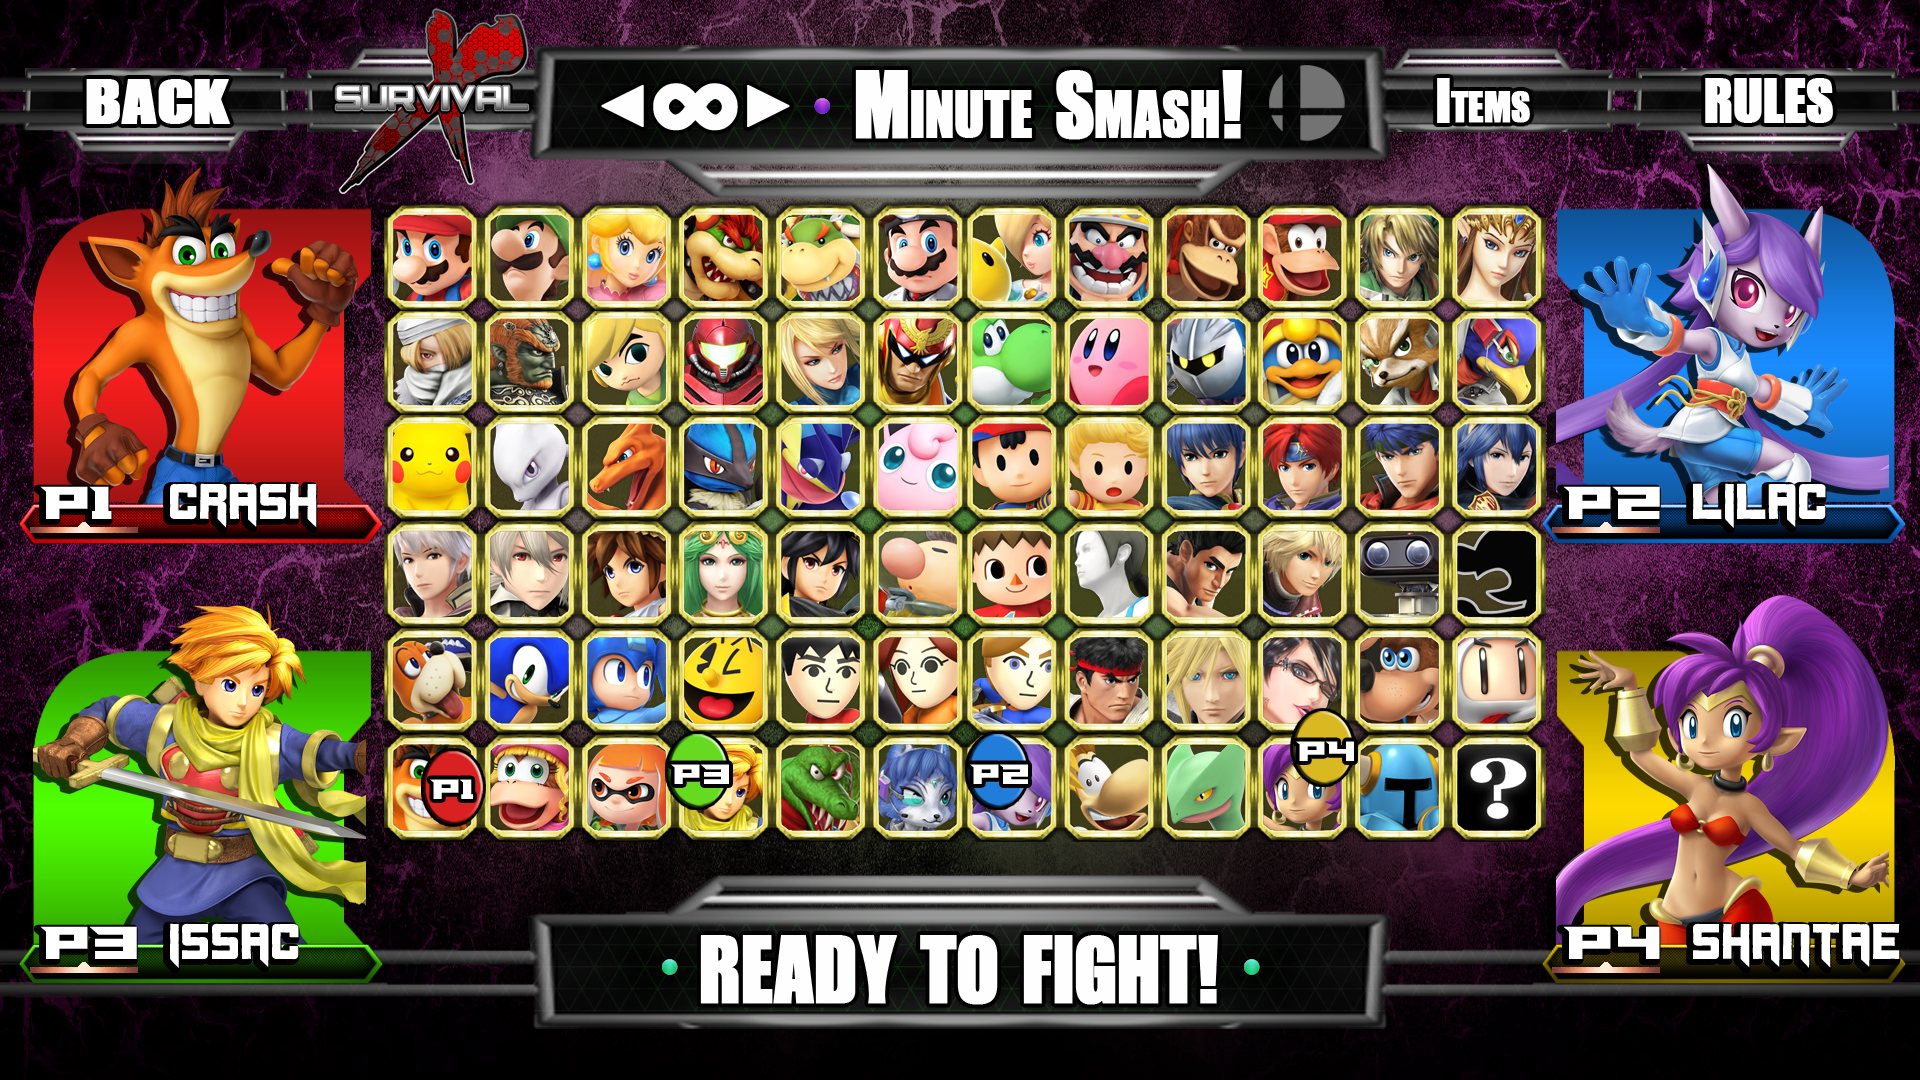 super smash bros ultra character select screen by